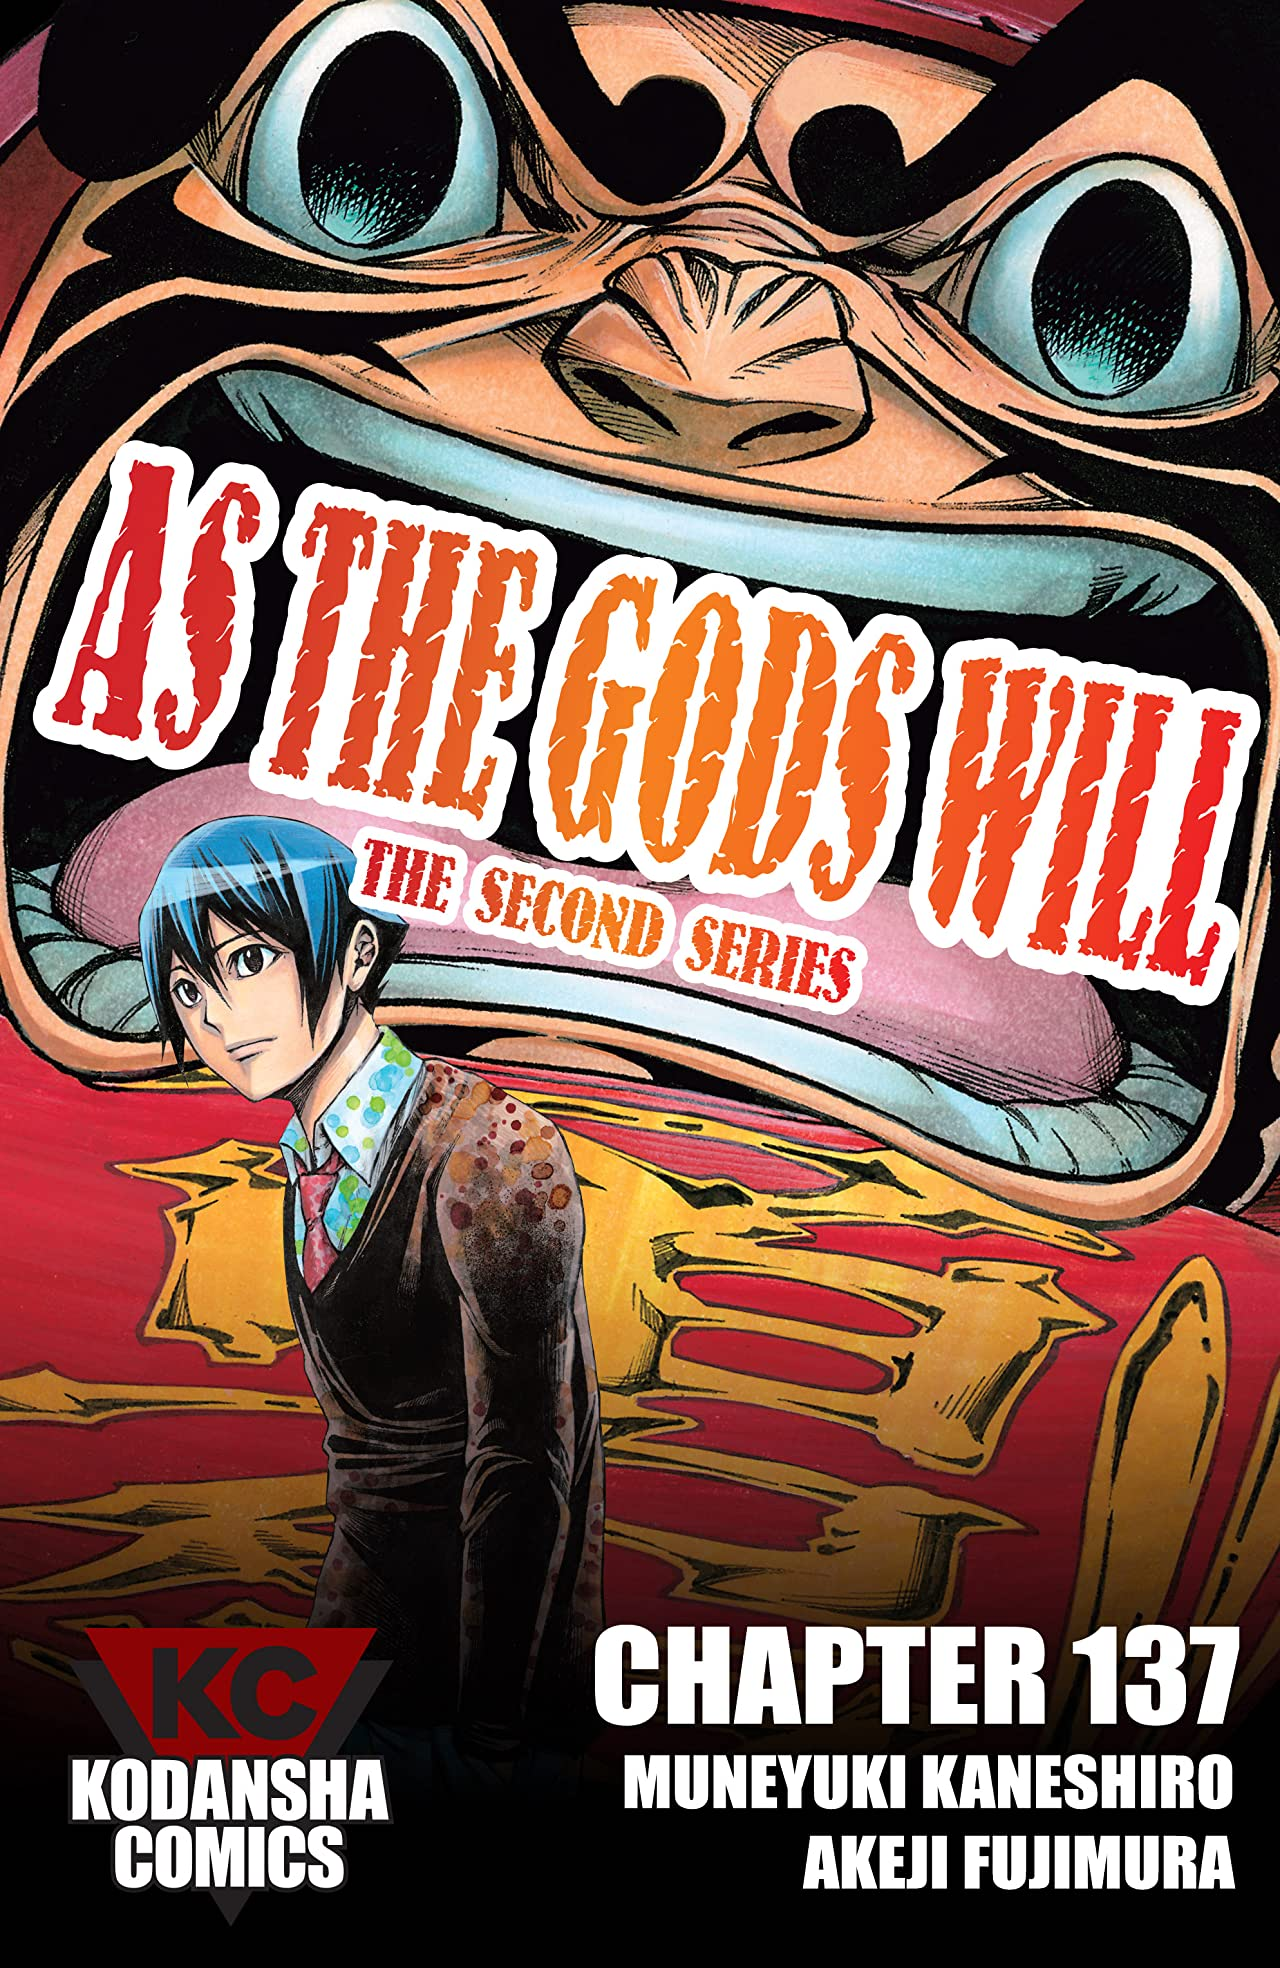 As The Gods Will: The Second Series #137